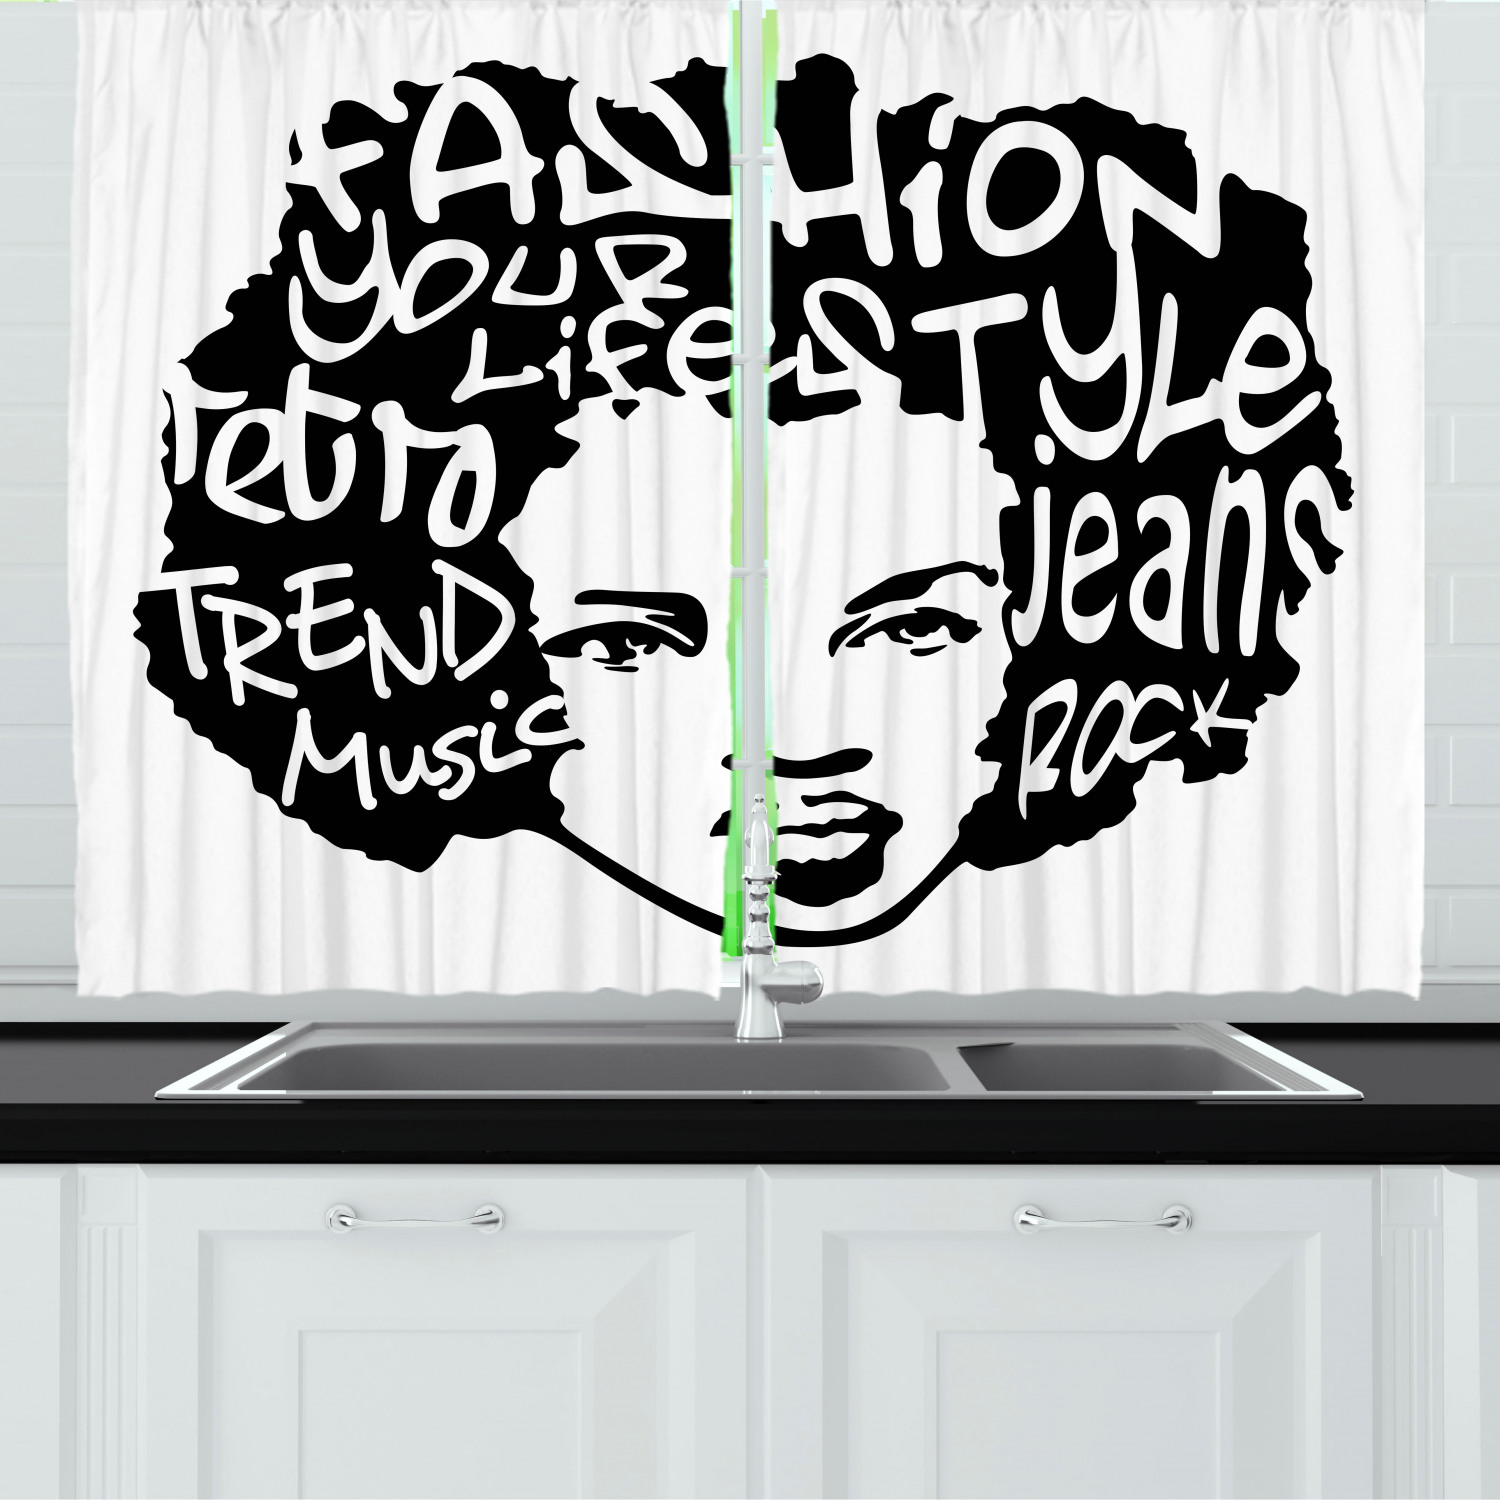 Urban Graffiti Curtains 2 Panels Set Fat Cap Spray Painted Style Typographic Words On A Afro Haired Girl Window Drapes For Living Room Bedroom 55w X 39l Inches Black And White By